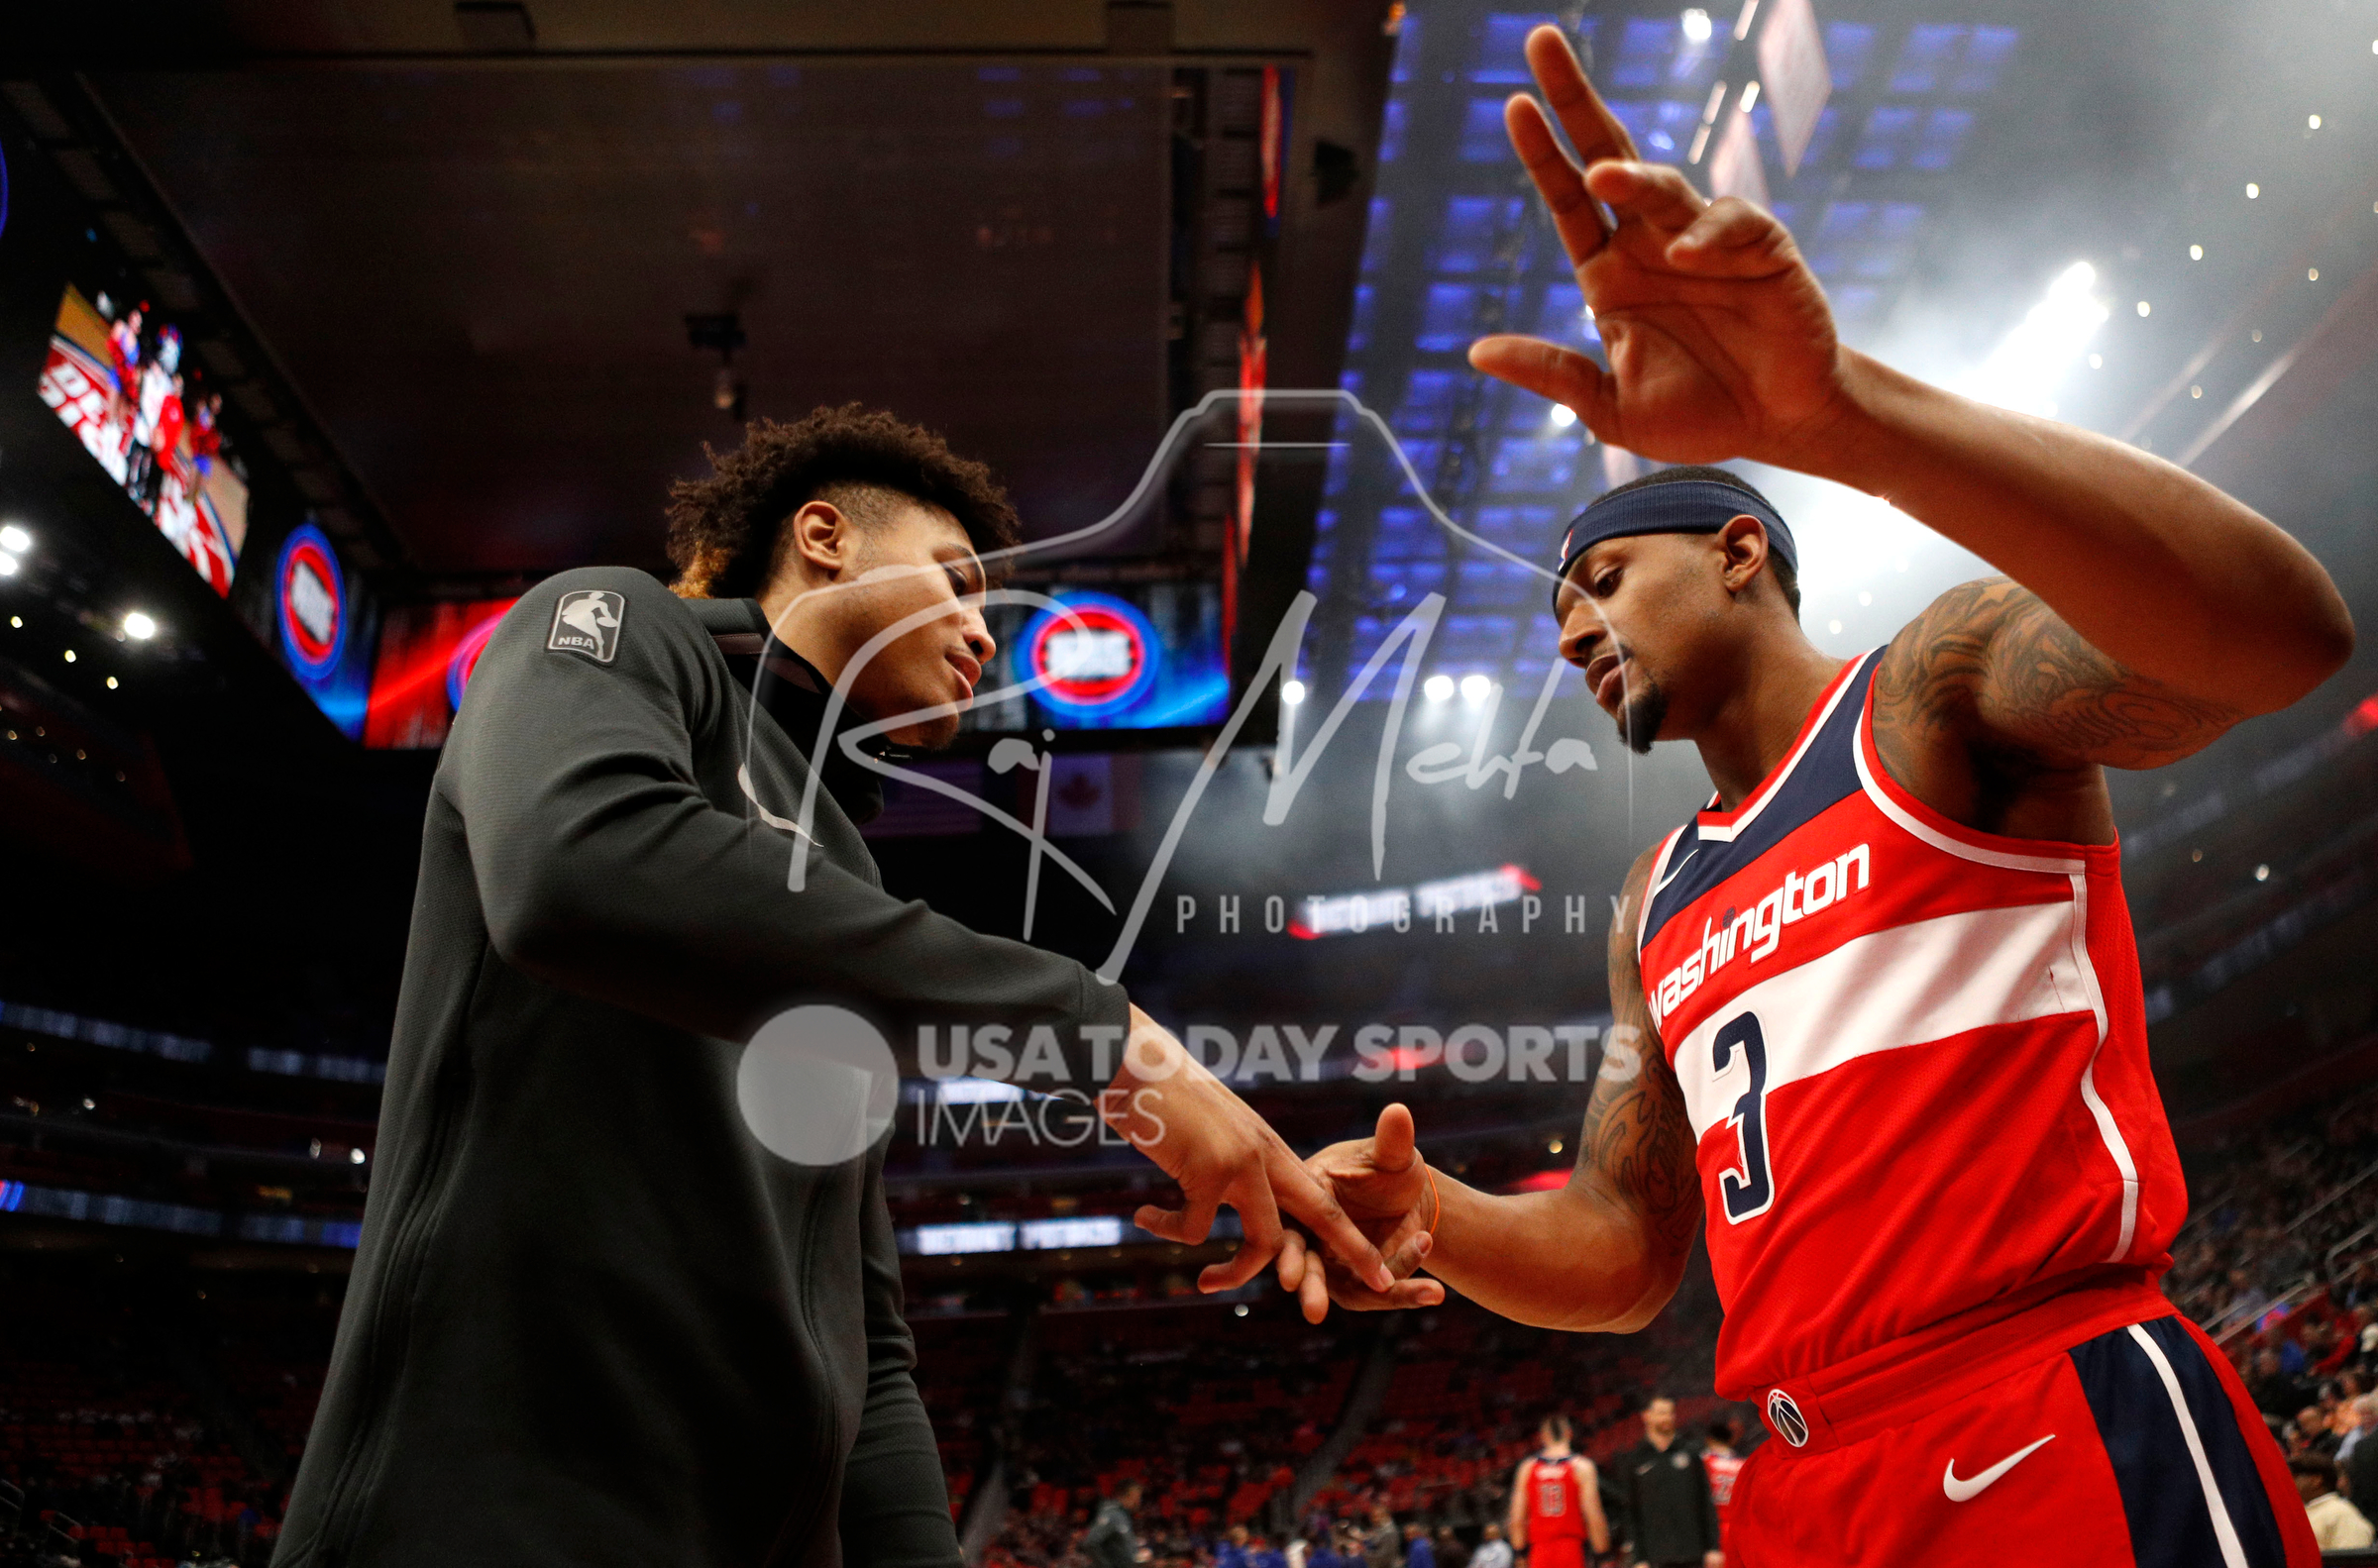 Mar 29, 2018; Detroit, MI, USA; Washington Wizards guard Bradley Beal (3) shakes hands with forward Kelly Oubre Jr. (12) before the game against the Detroit Pistons at Little Caesars Arena. Mandatory Credit: Raj Mehta-USA TODAY Sports